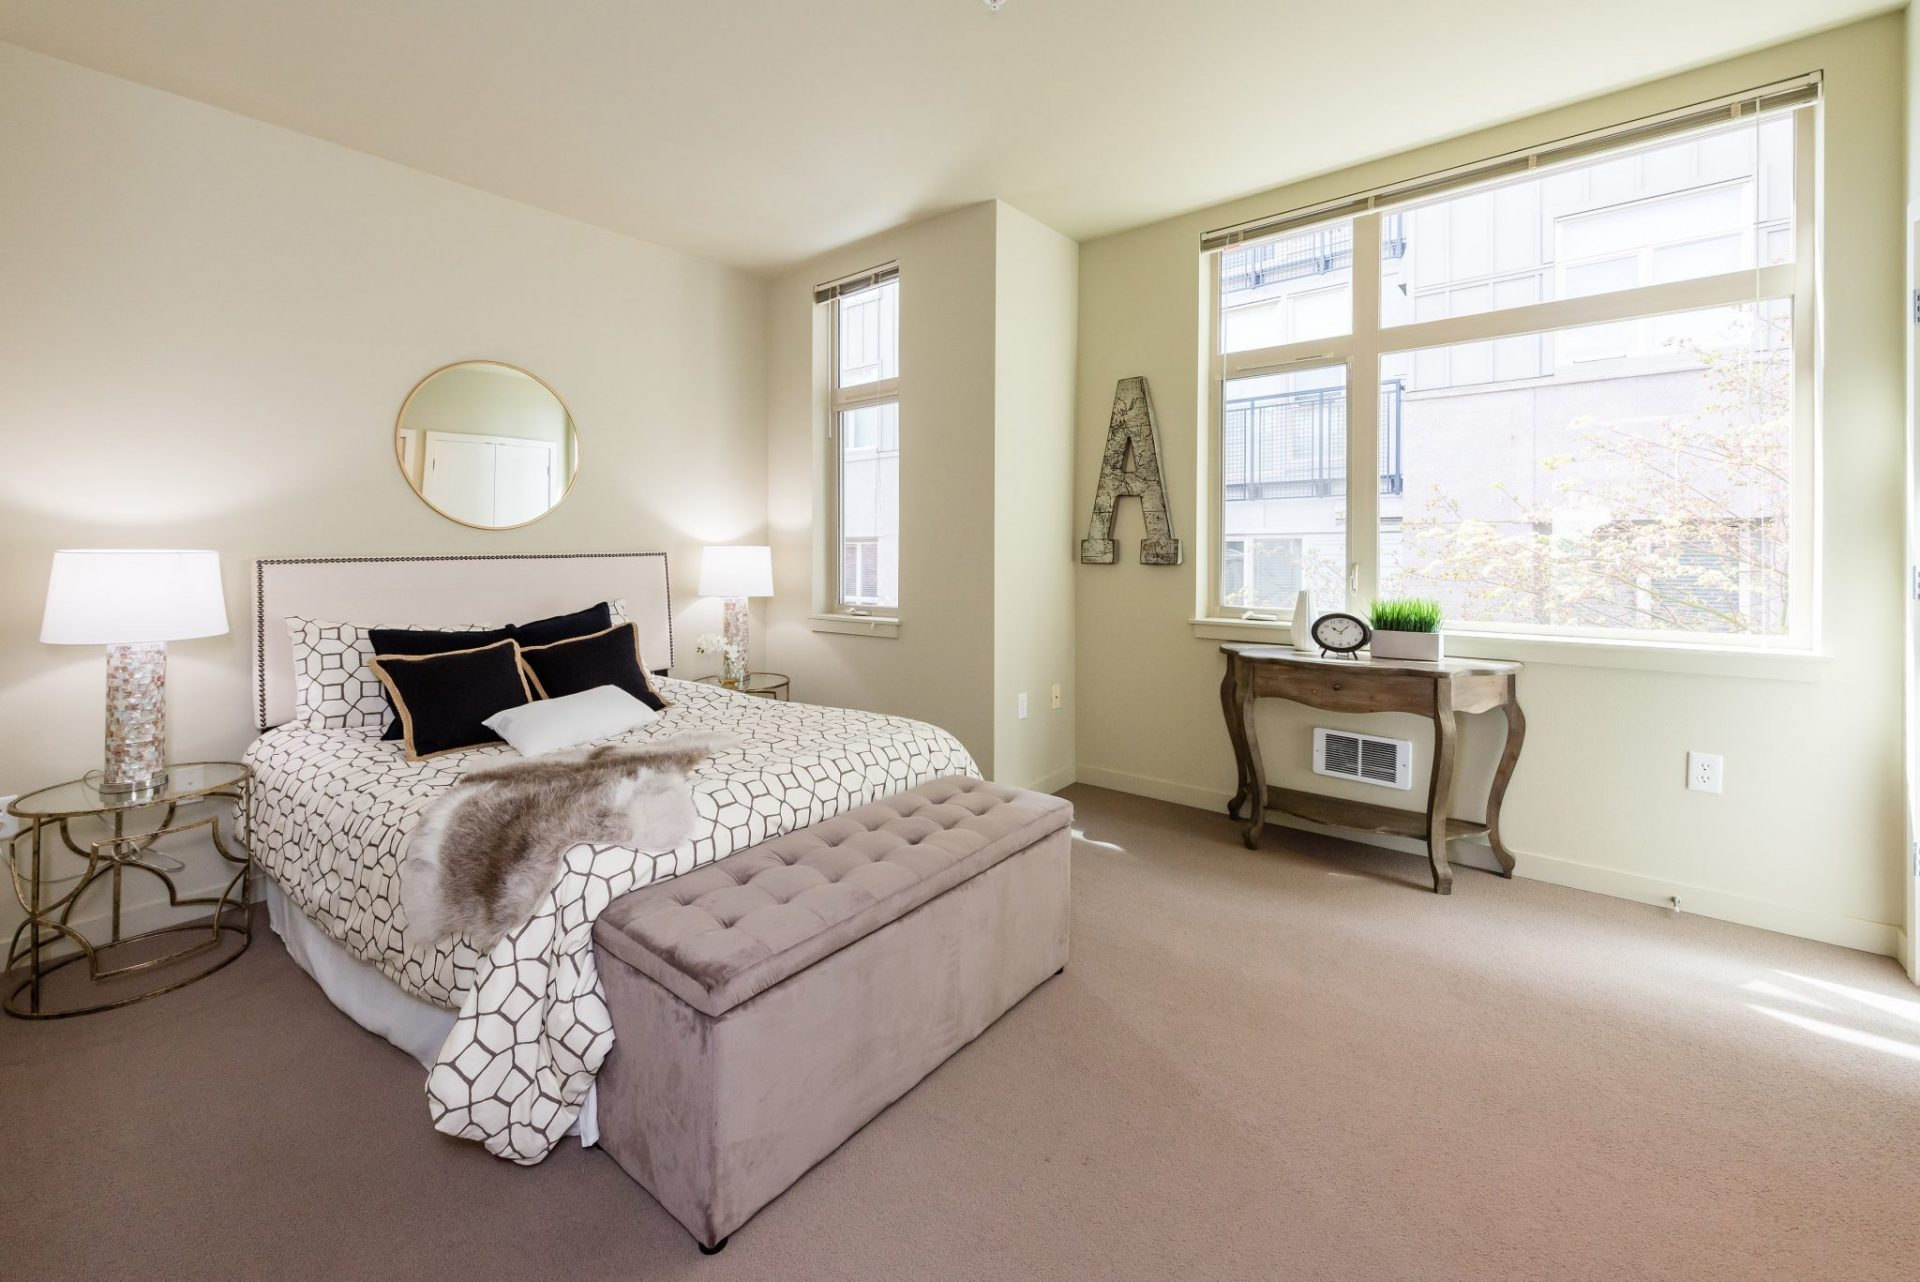 Spacious Bedroom With Ample Natural Lighting At Thornton Place Apartments In Seattle, WA